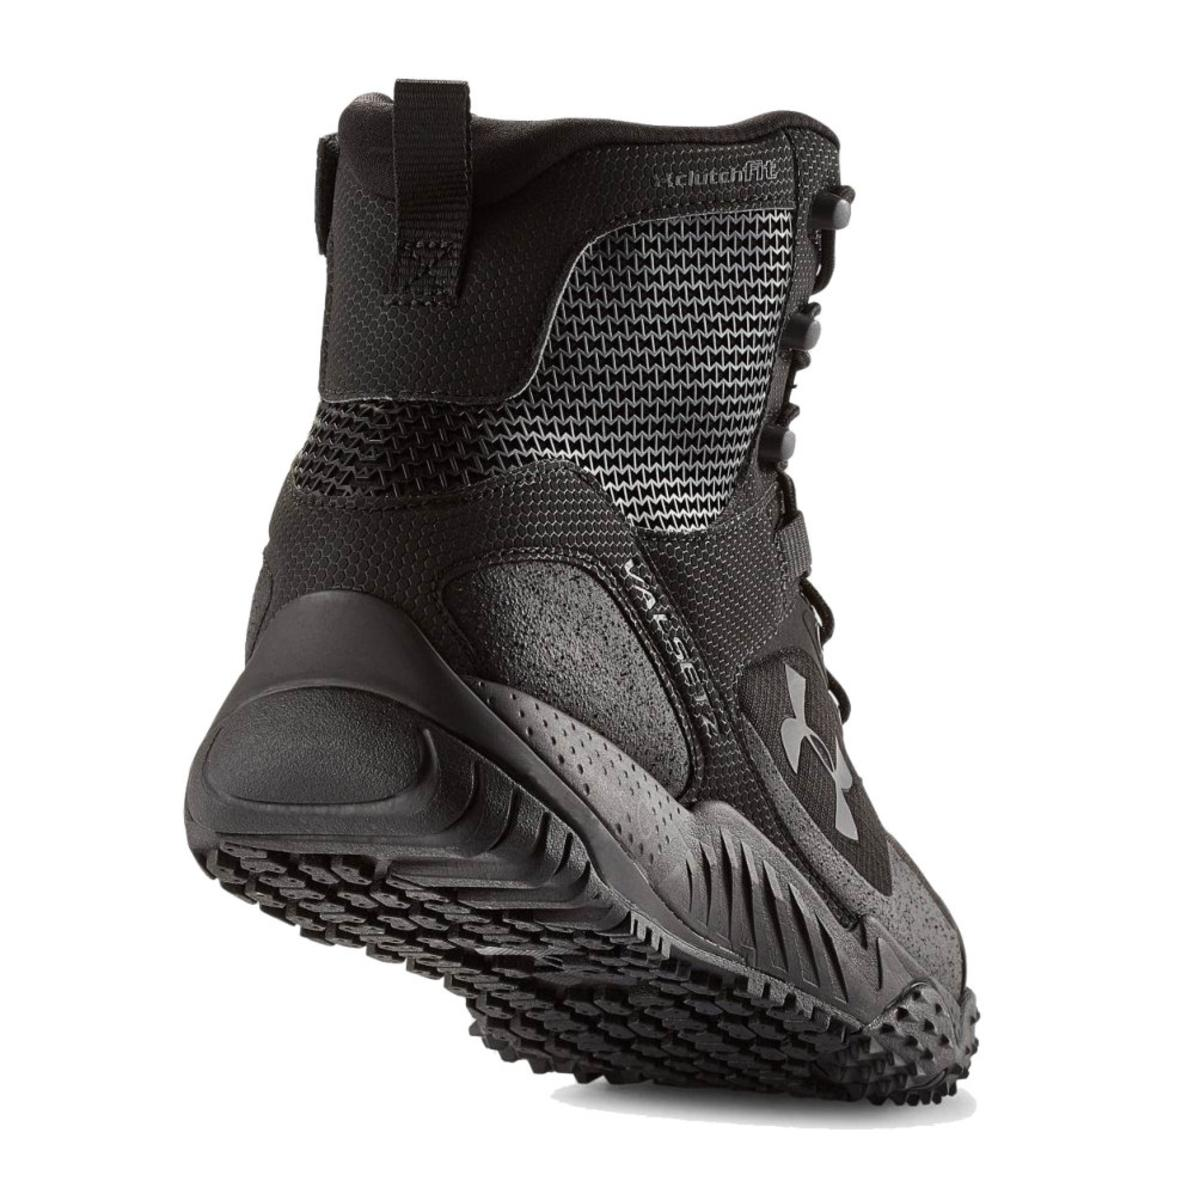 under armour 1250234 men's valsetz rts tactical boots